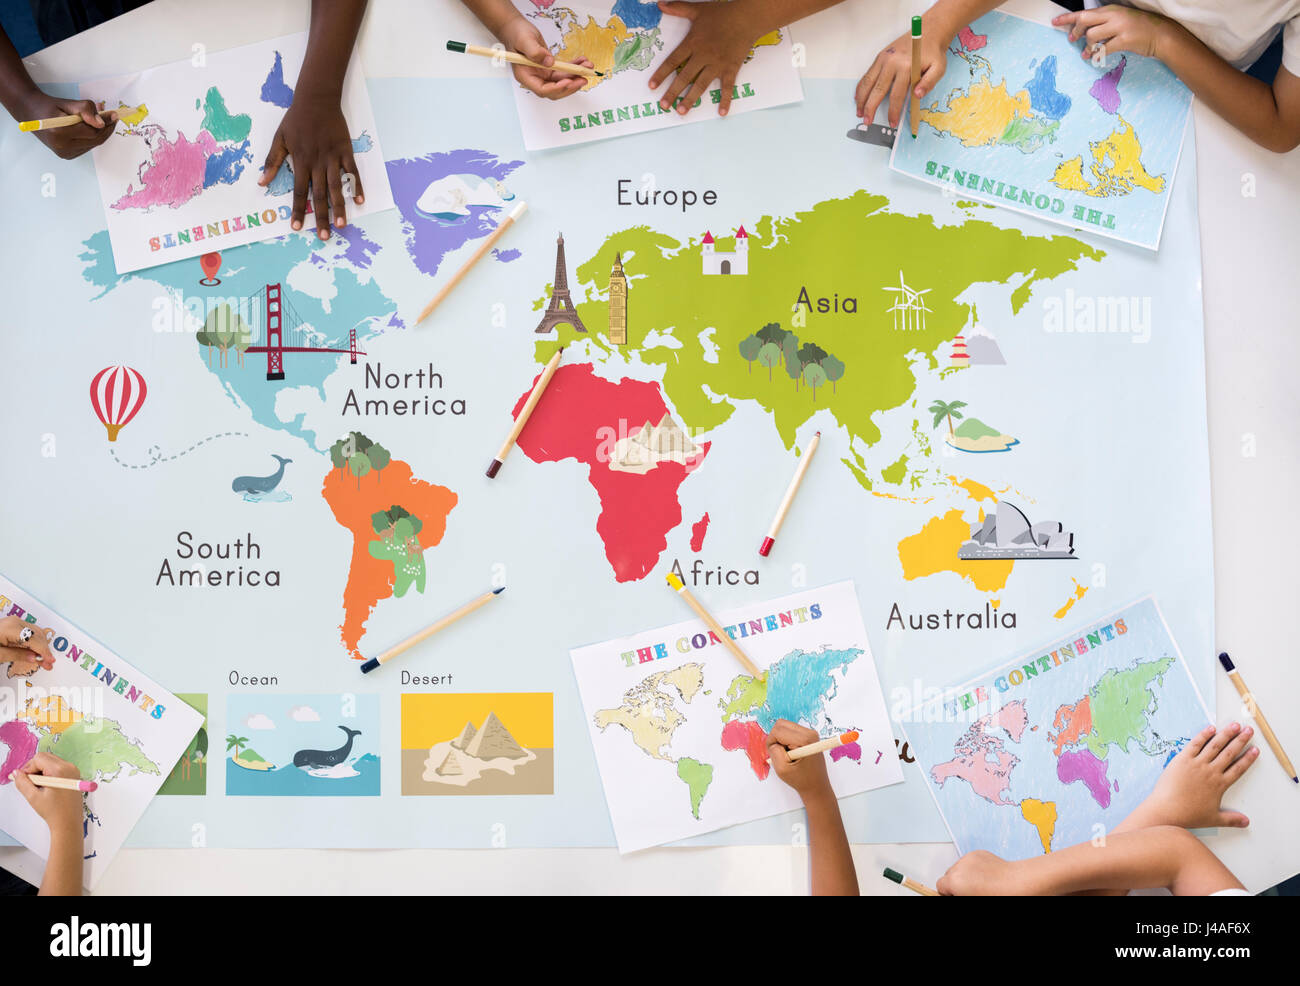 Kids learning world map with continents countries ocean geography kids learning world map with continents countries ocean geography stock photo gumiabroncs Gallery